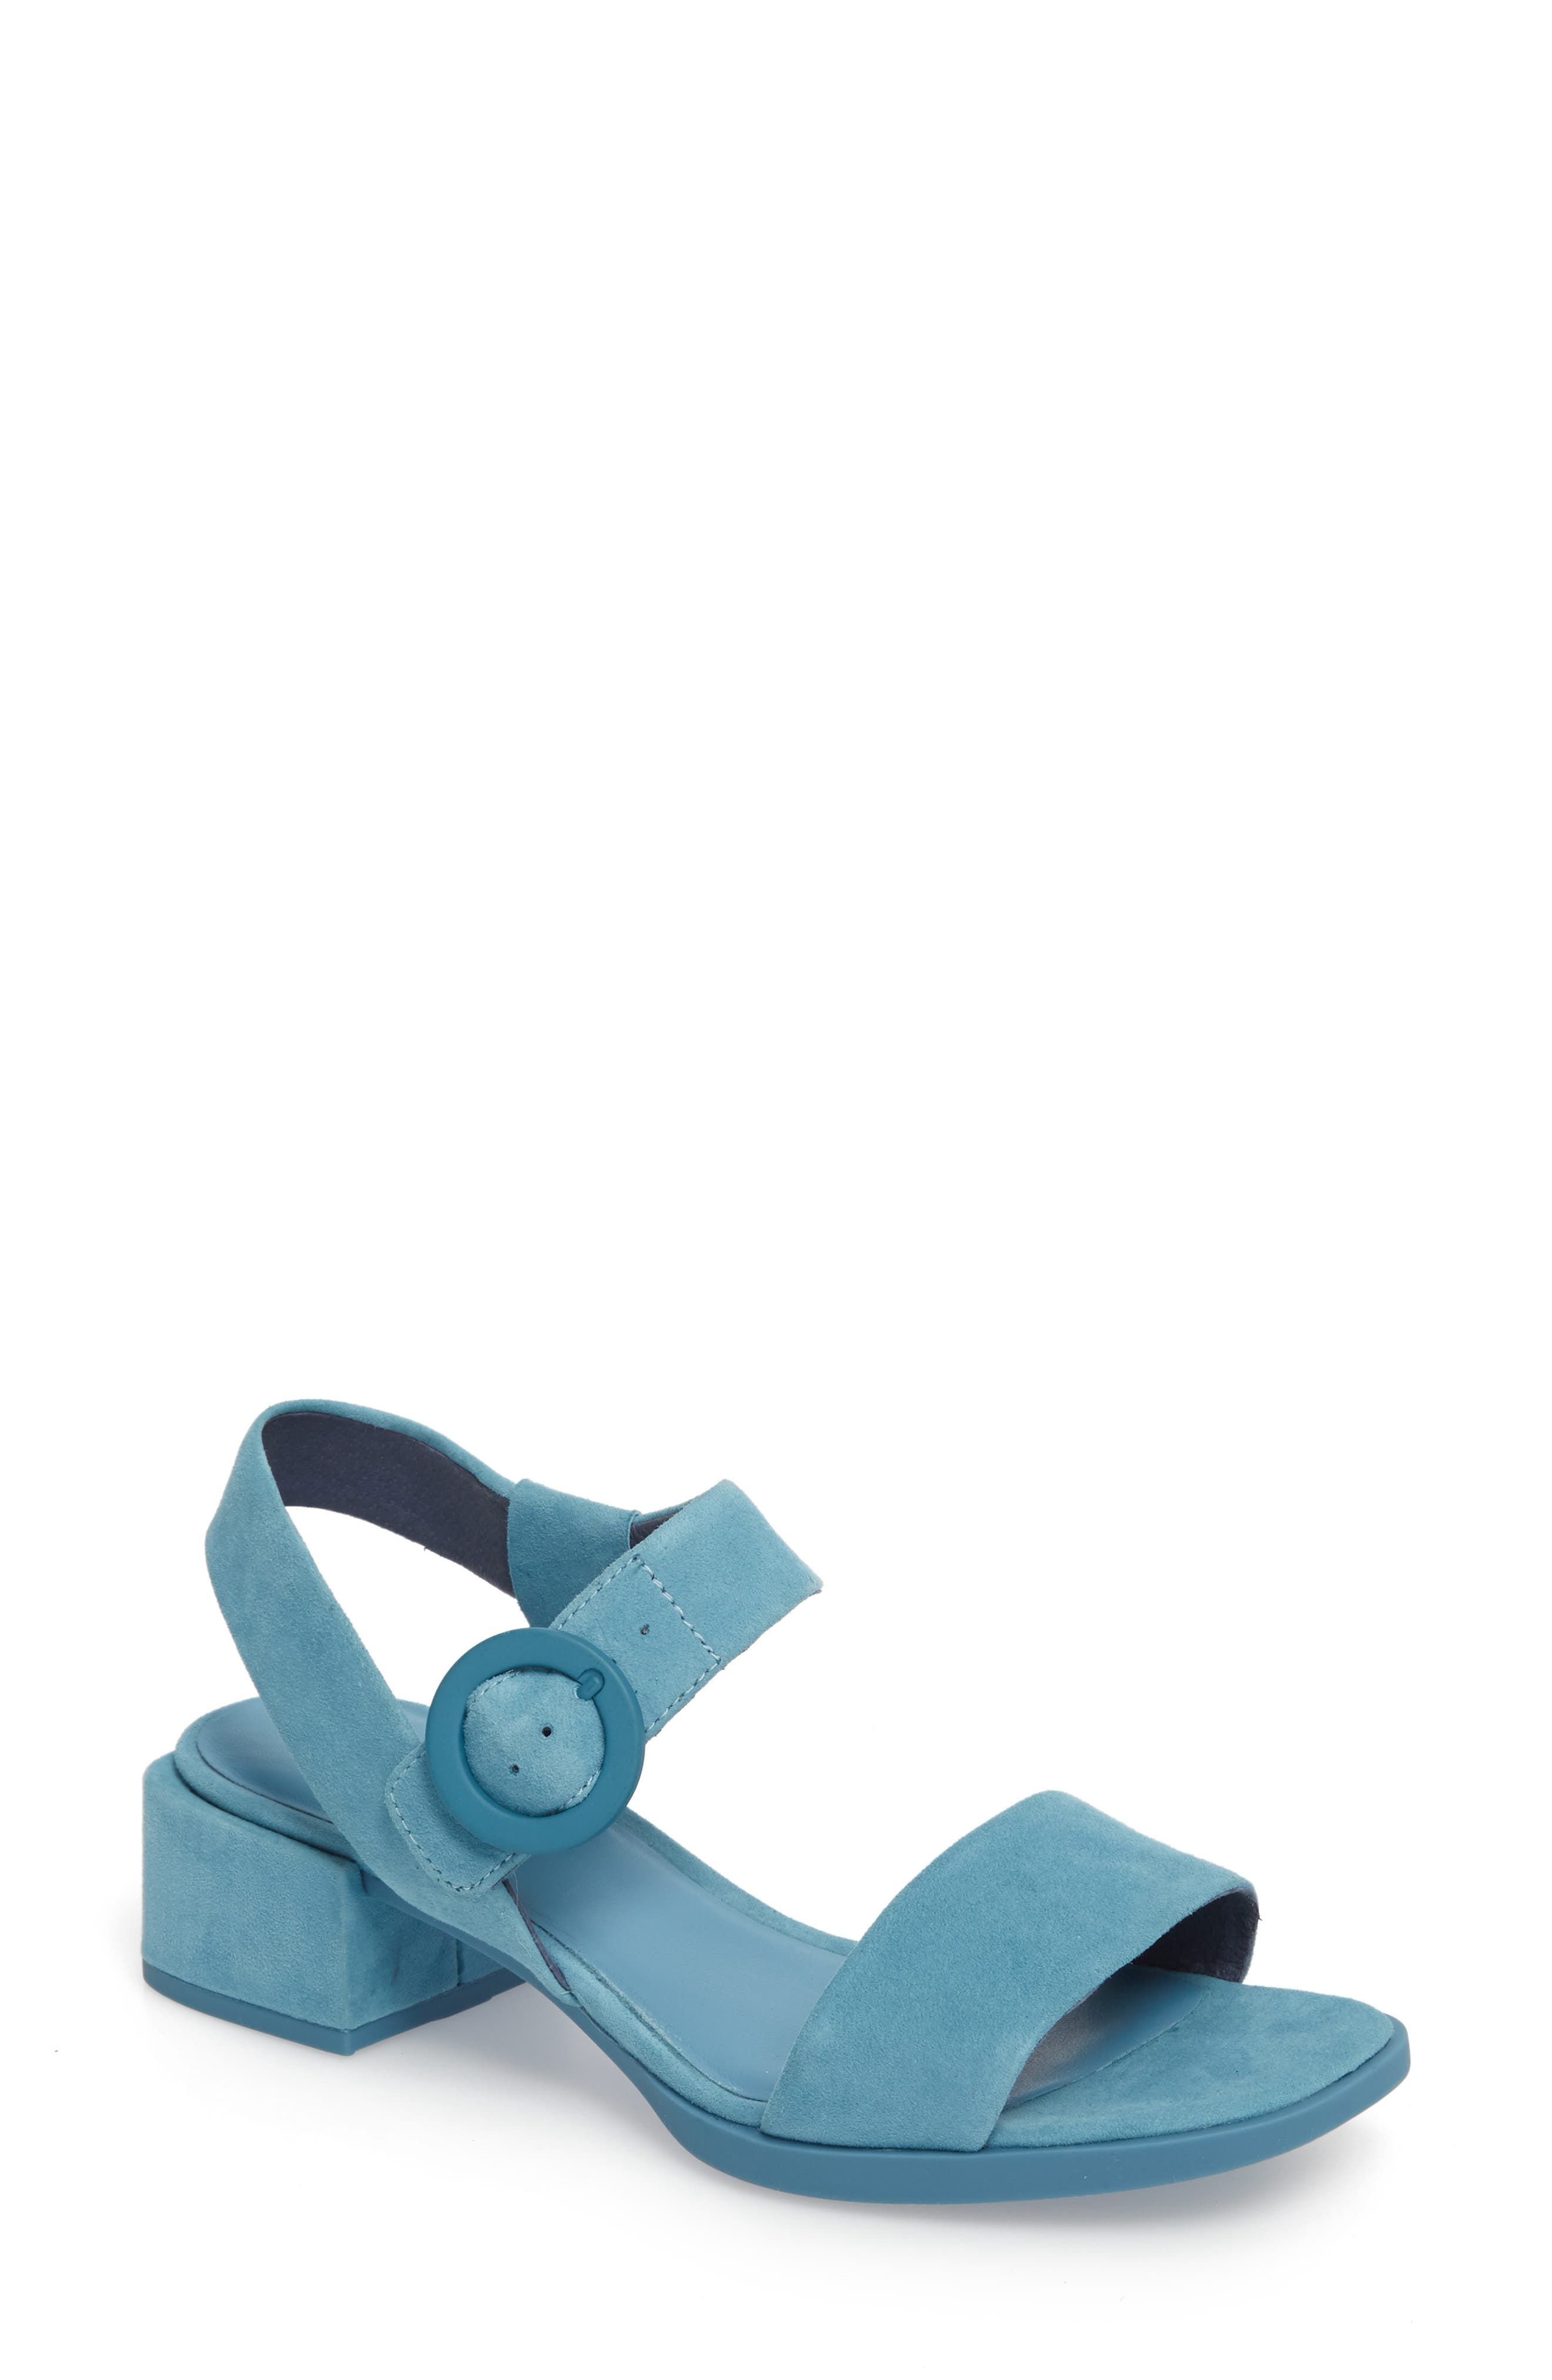 Kobo Sandal,                             Main thumbnail 1, color,                             Medium Blue Suede